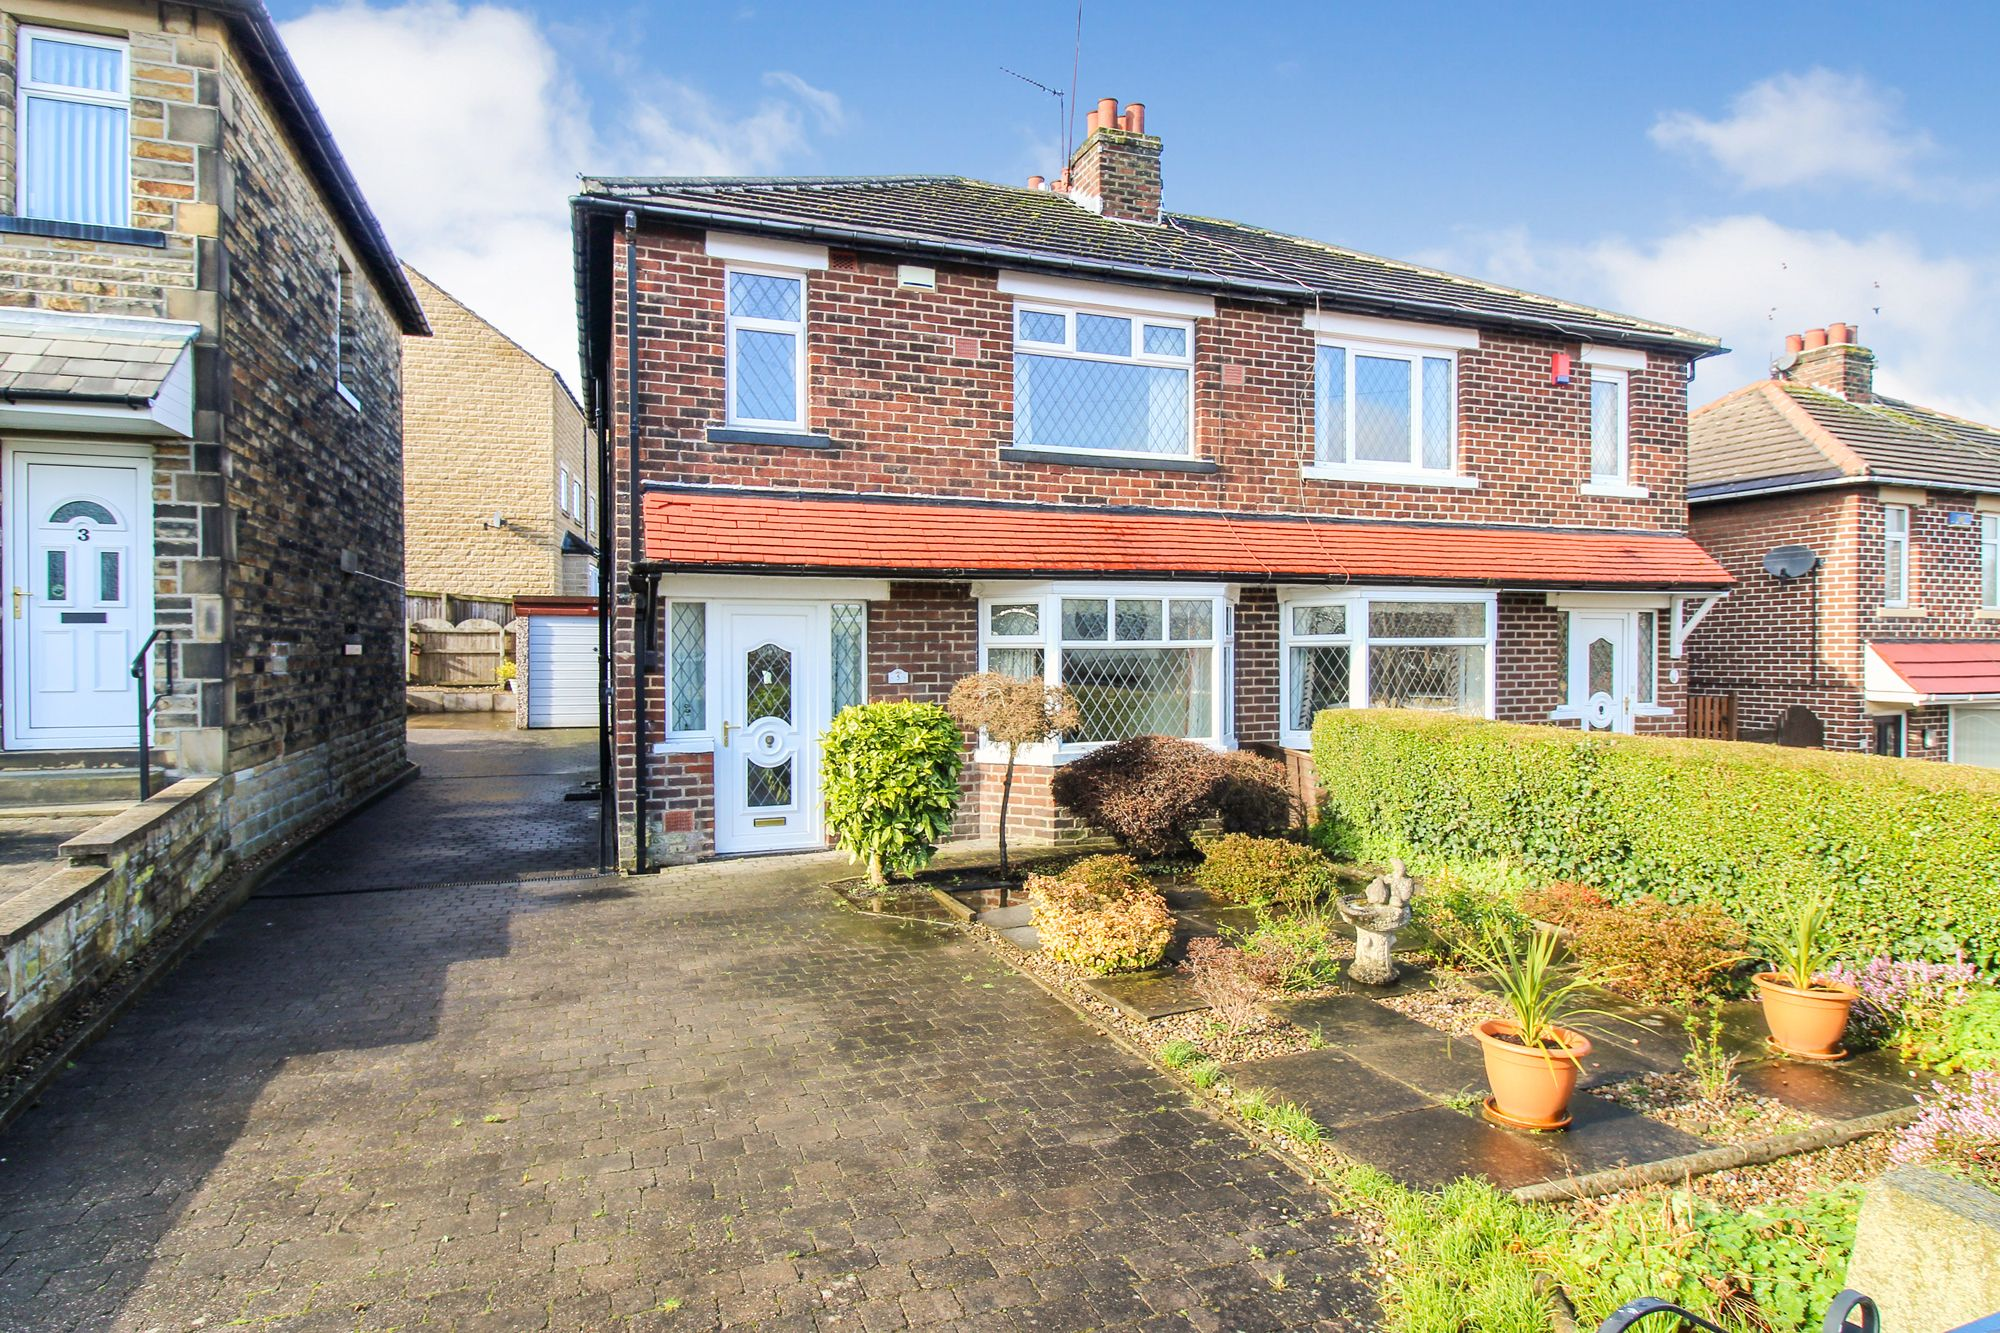 3 bedroom semi-detached house SSTC in Brighouse - Photograph 1